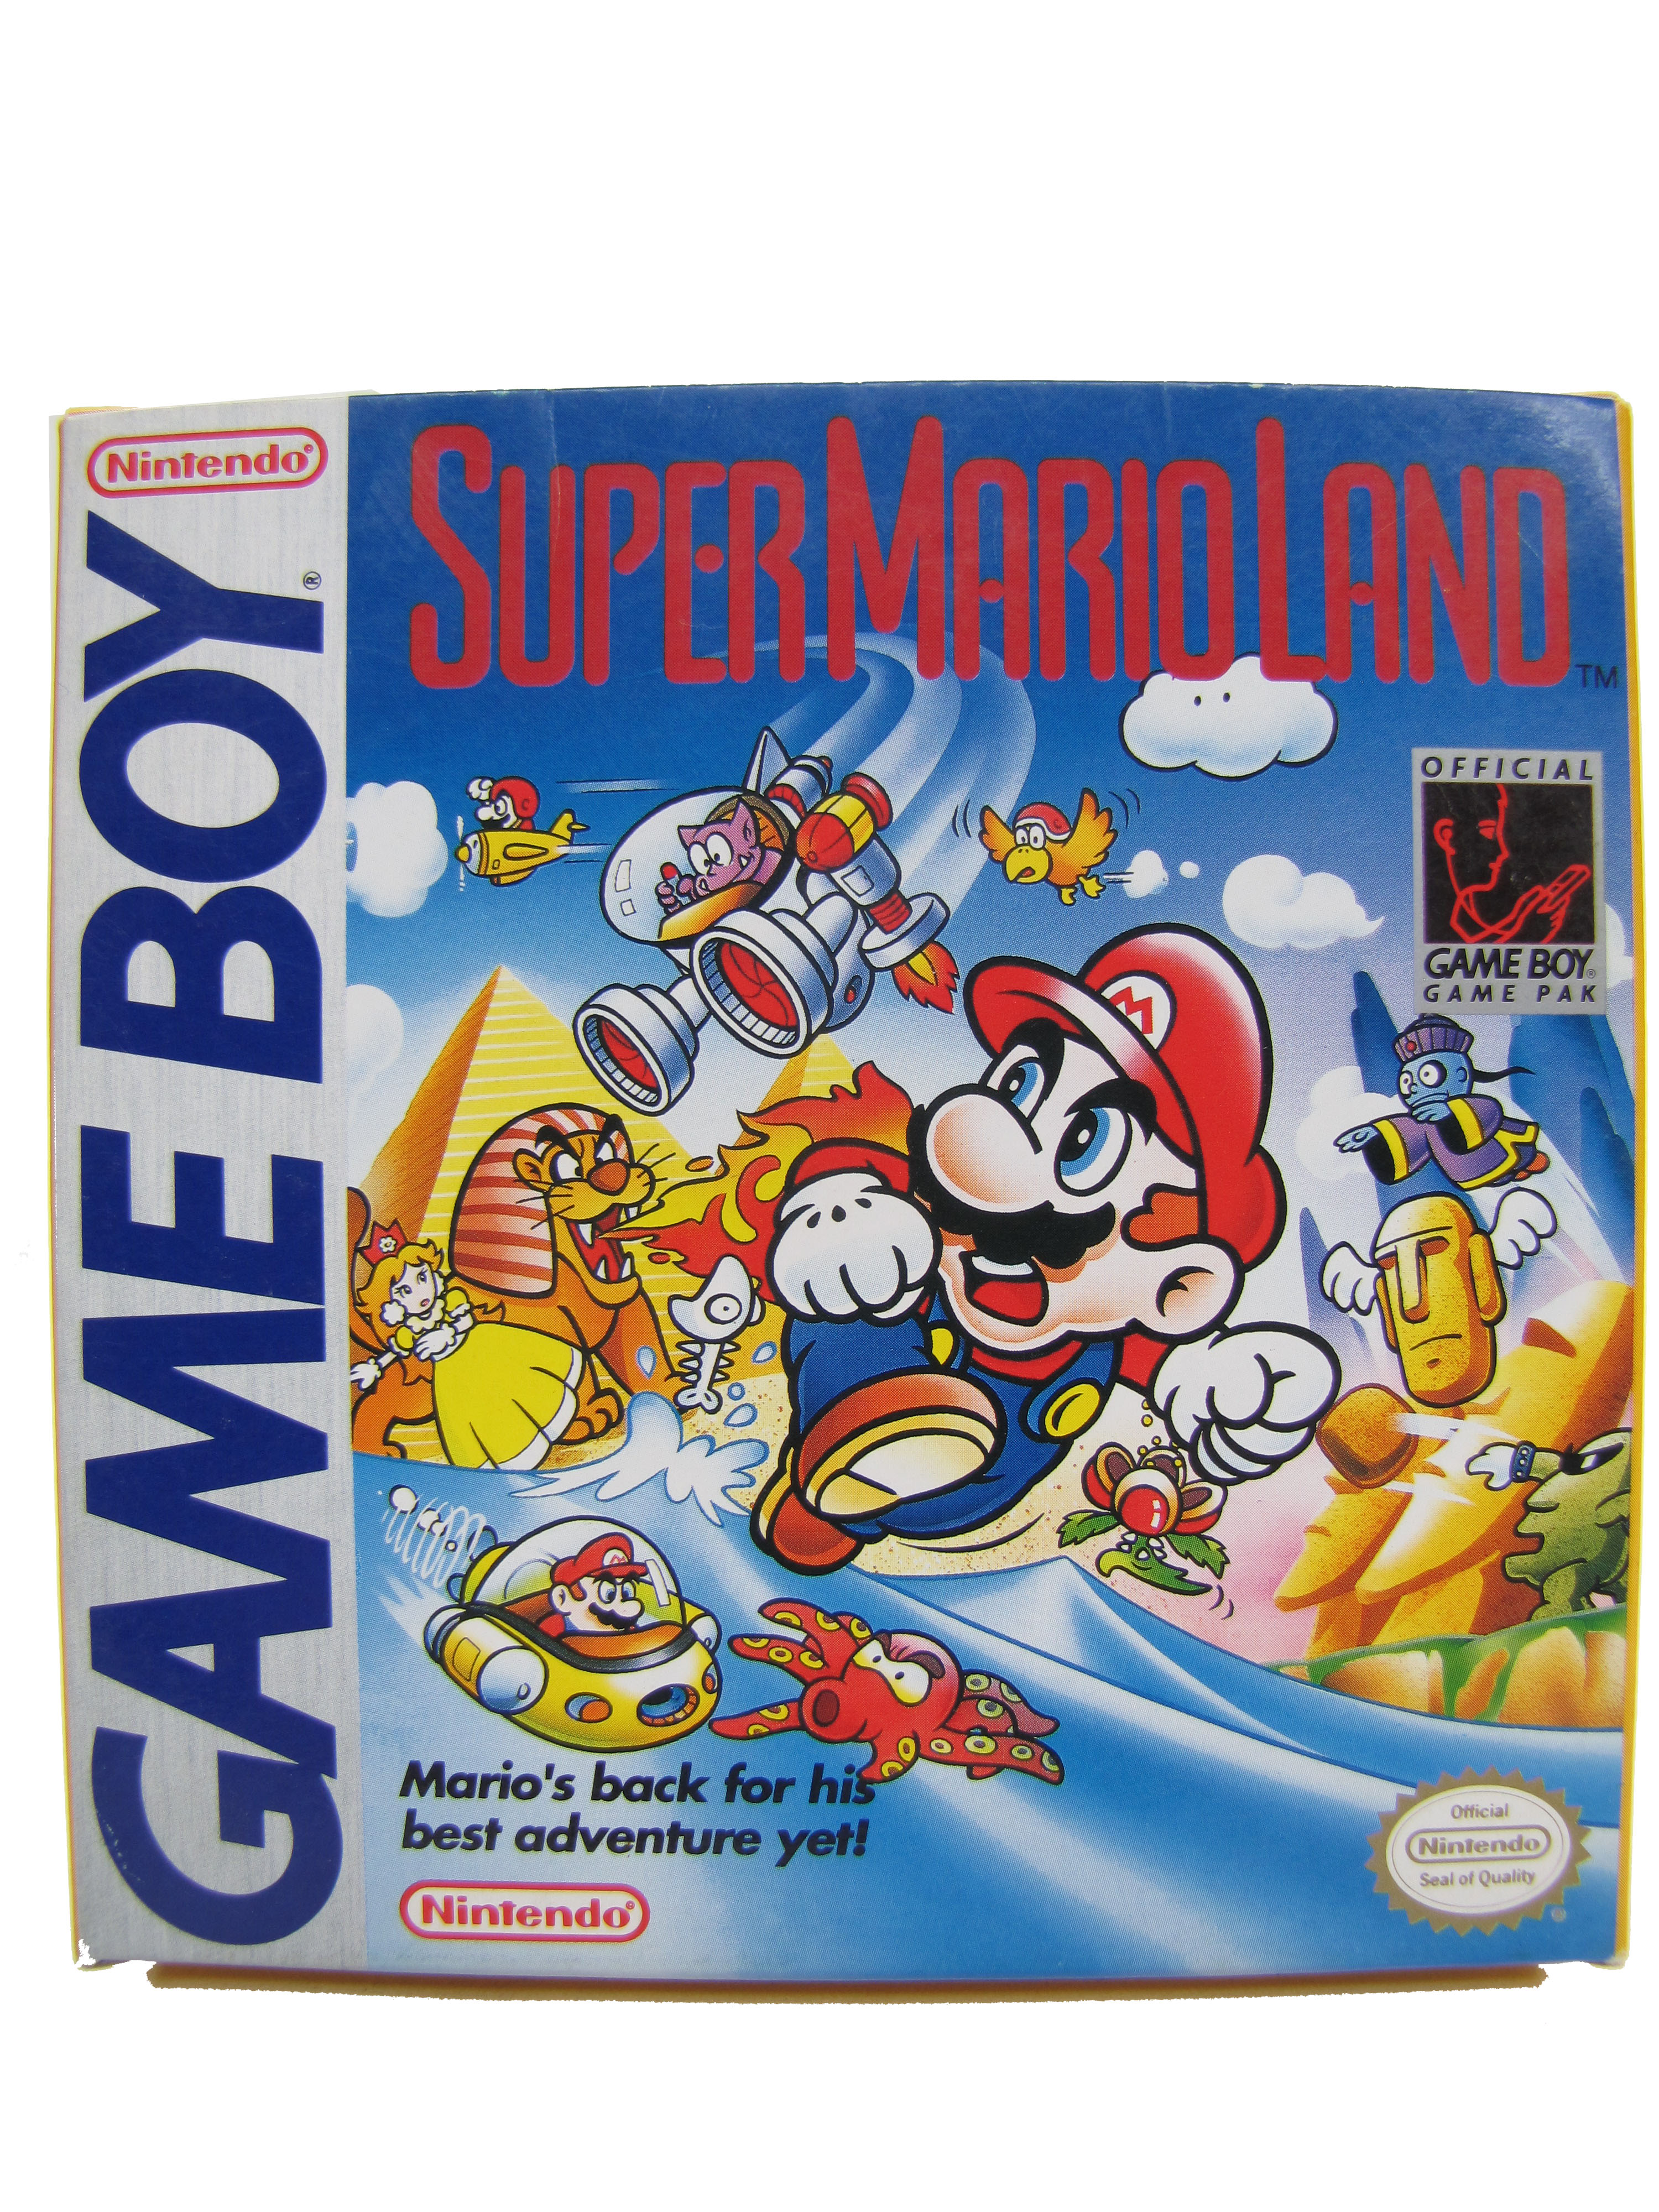 Game Boy Super Mario Land Complete in Box - 1989